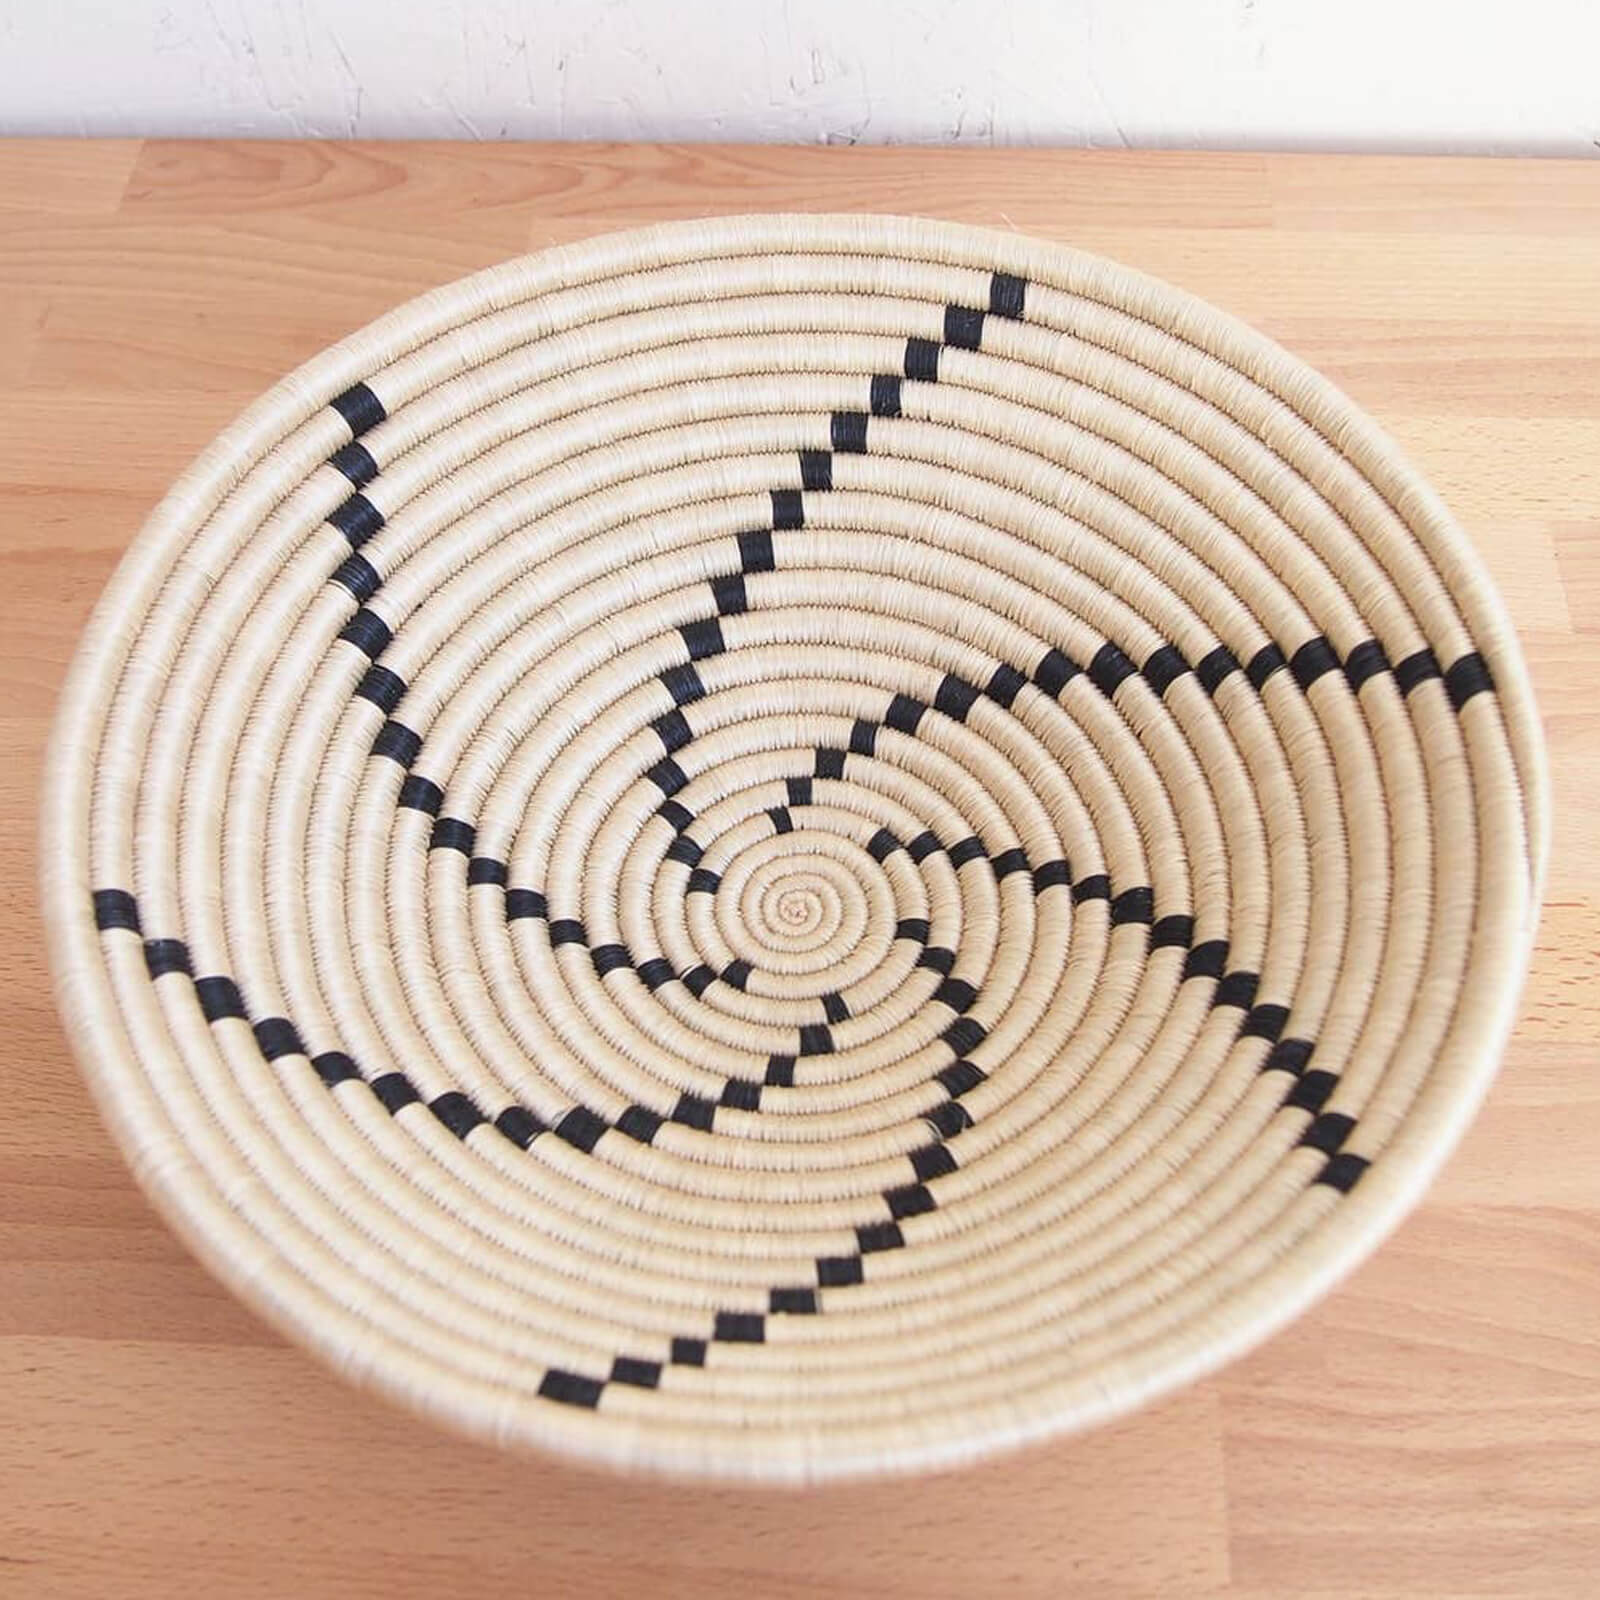 Hand Woven Tanga Basket - Tan and Black